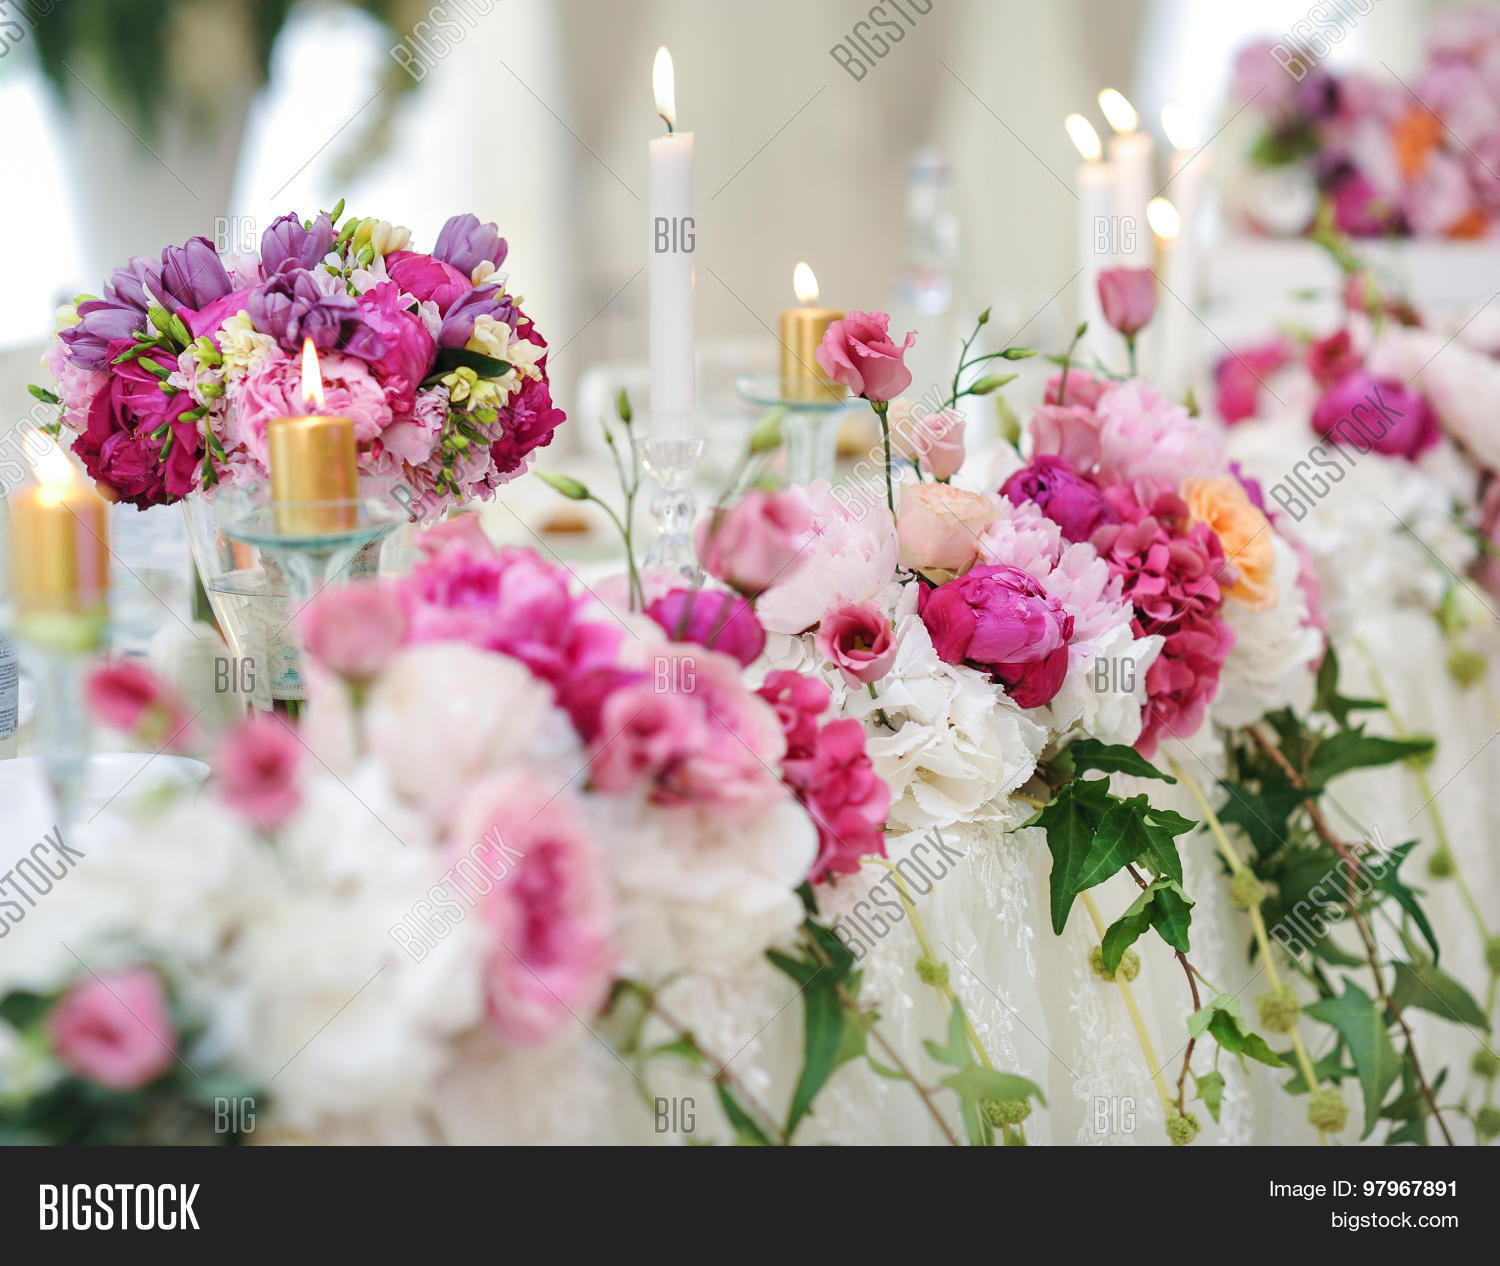 Wedding Decoration On Image Photo Free Trial Bigstock